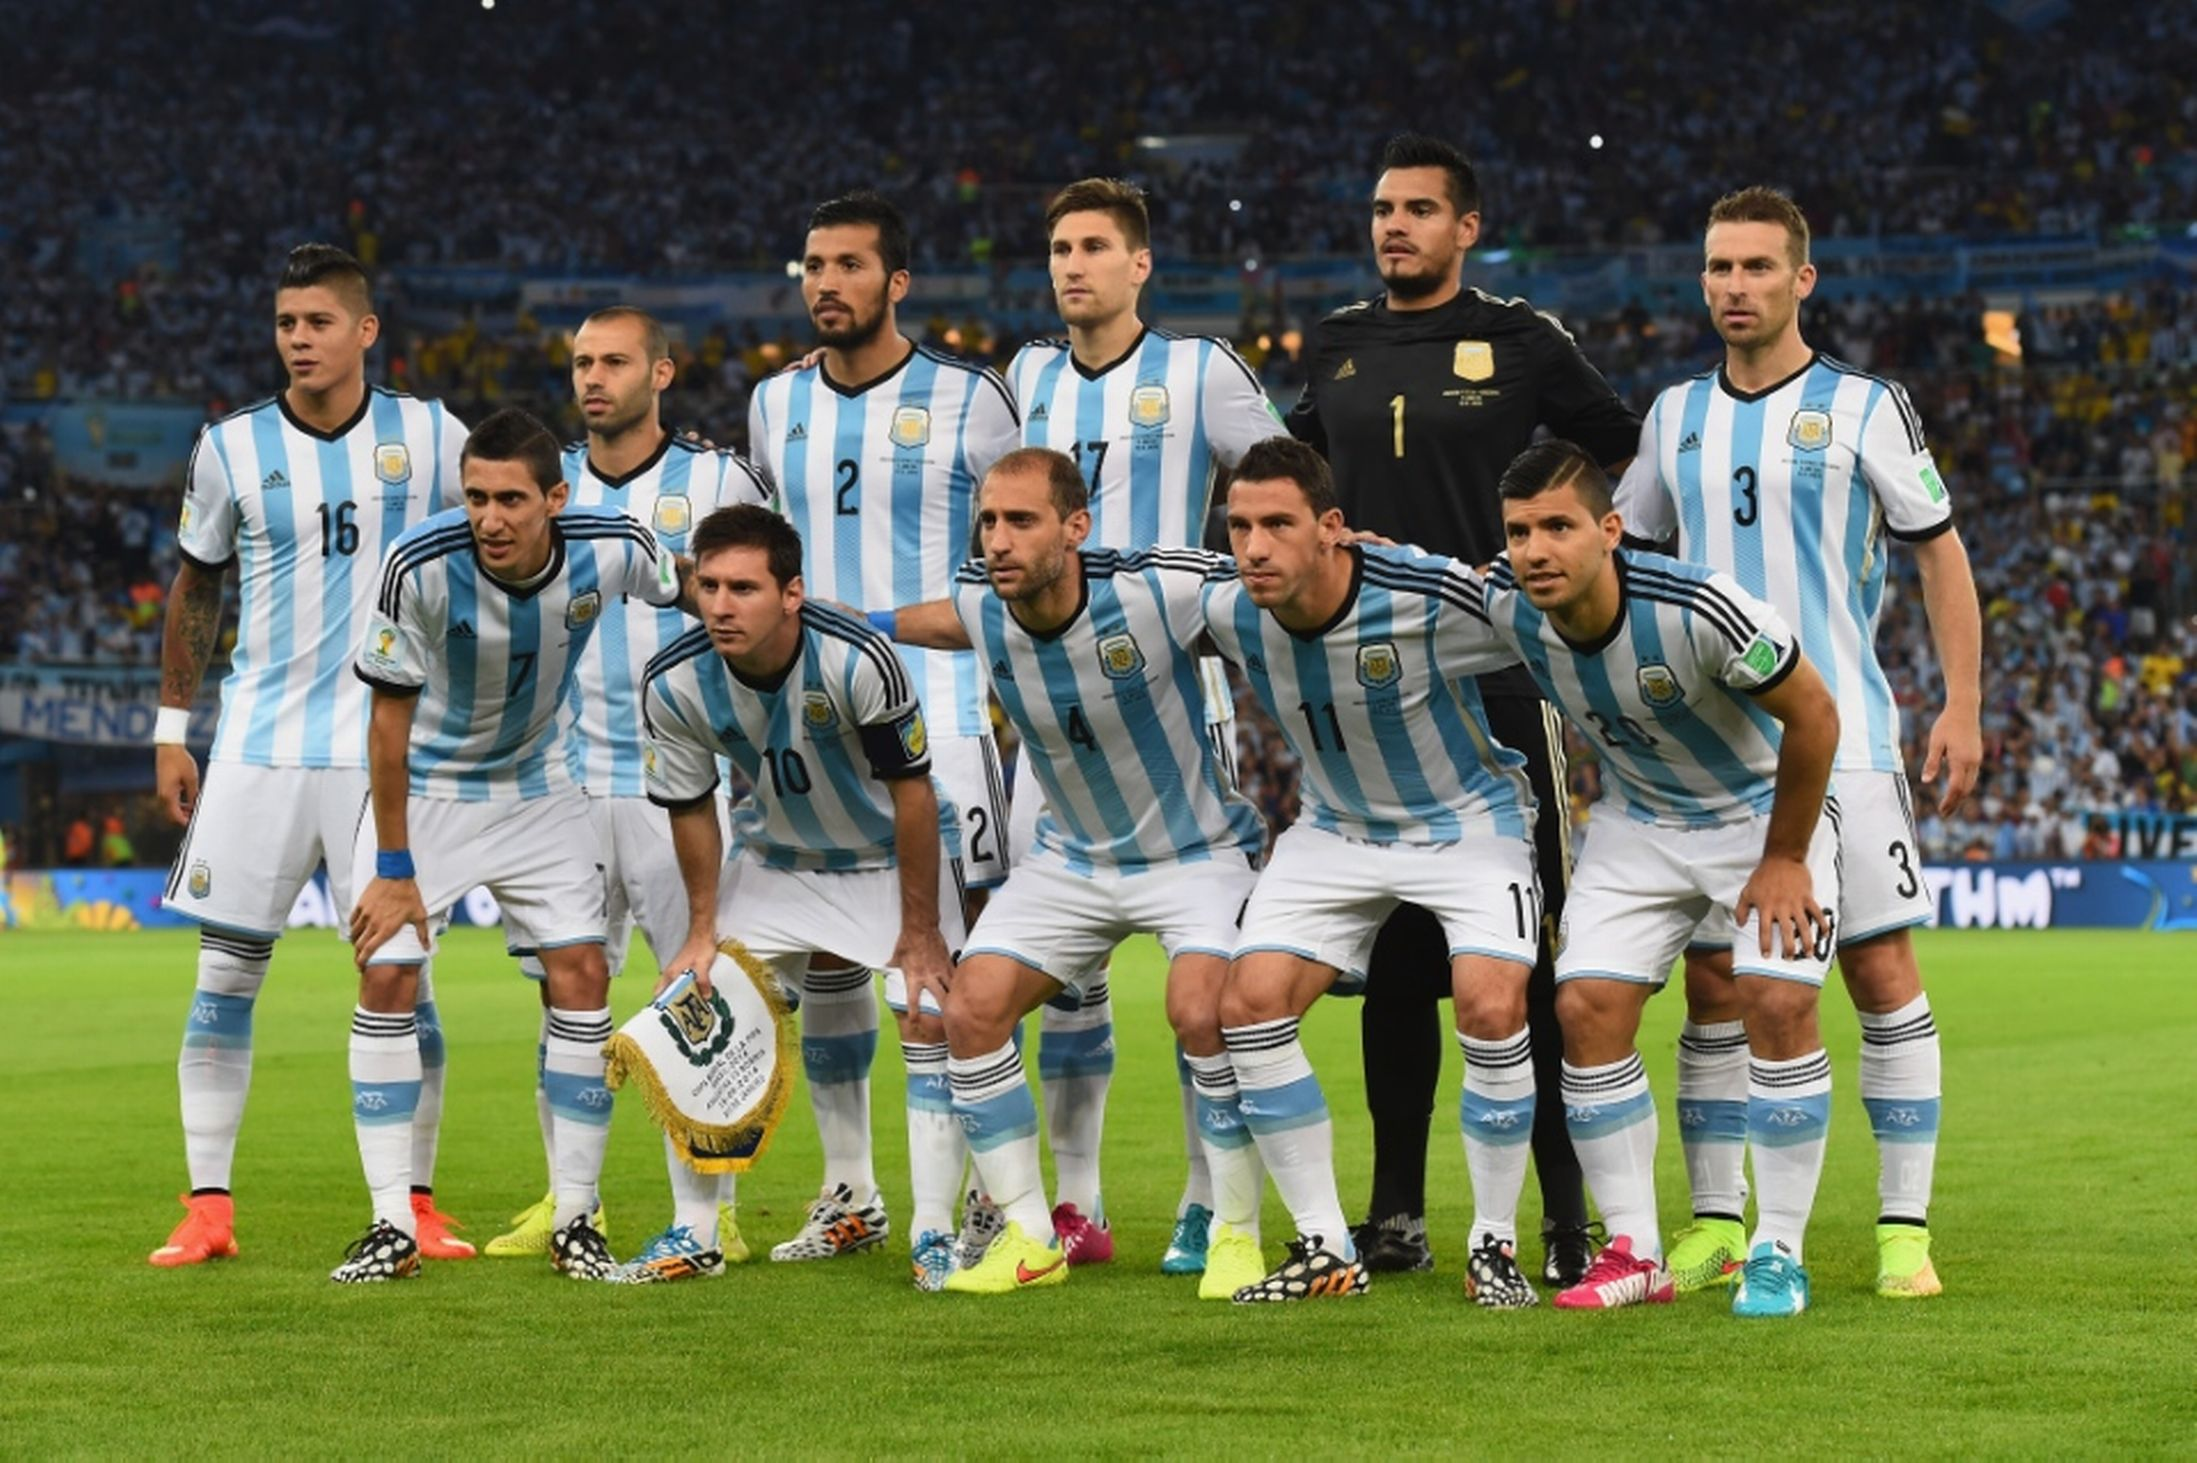 Argentina national football team FIFA 2014 WORLD CUP 2197x1463